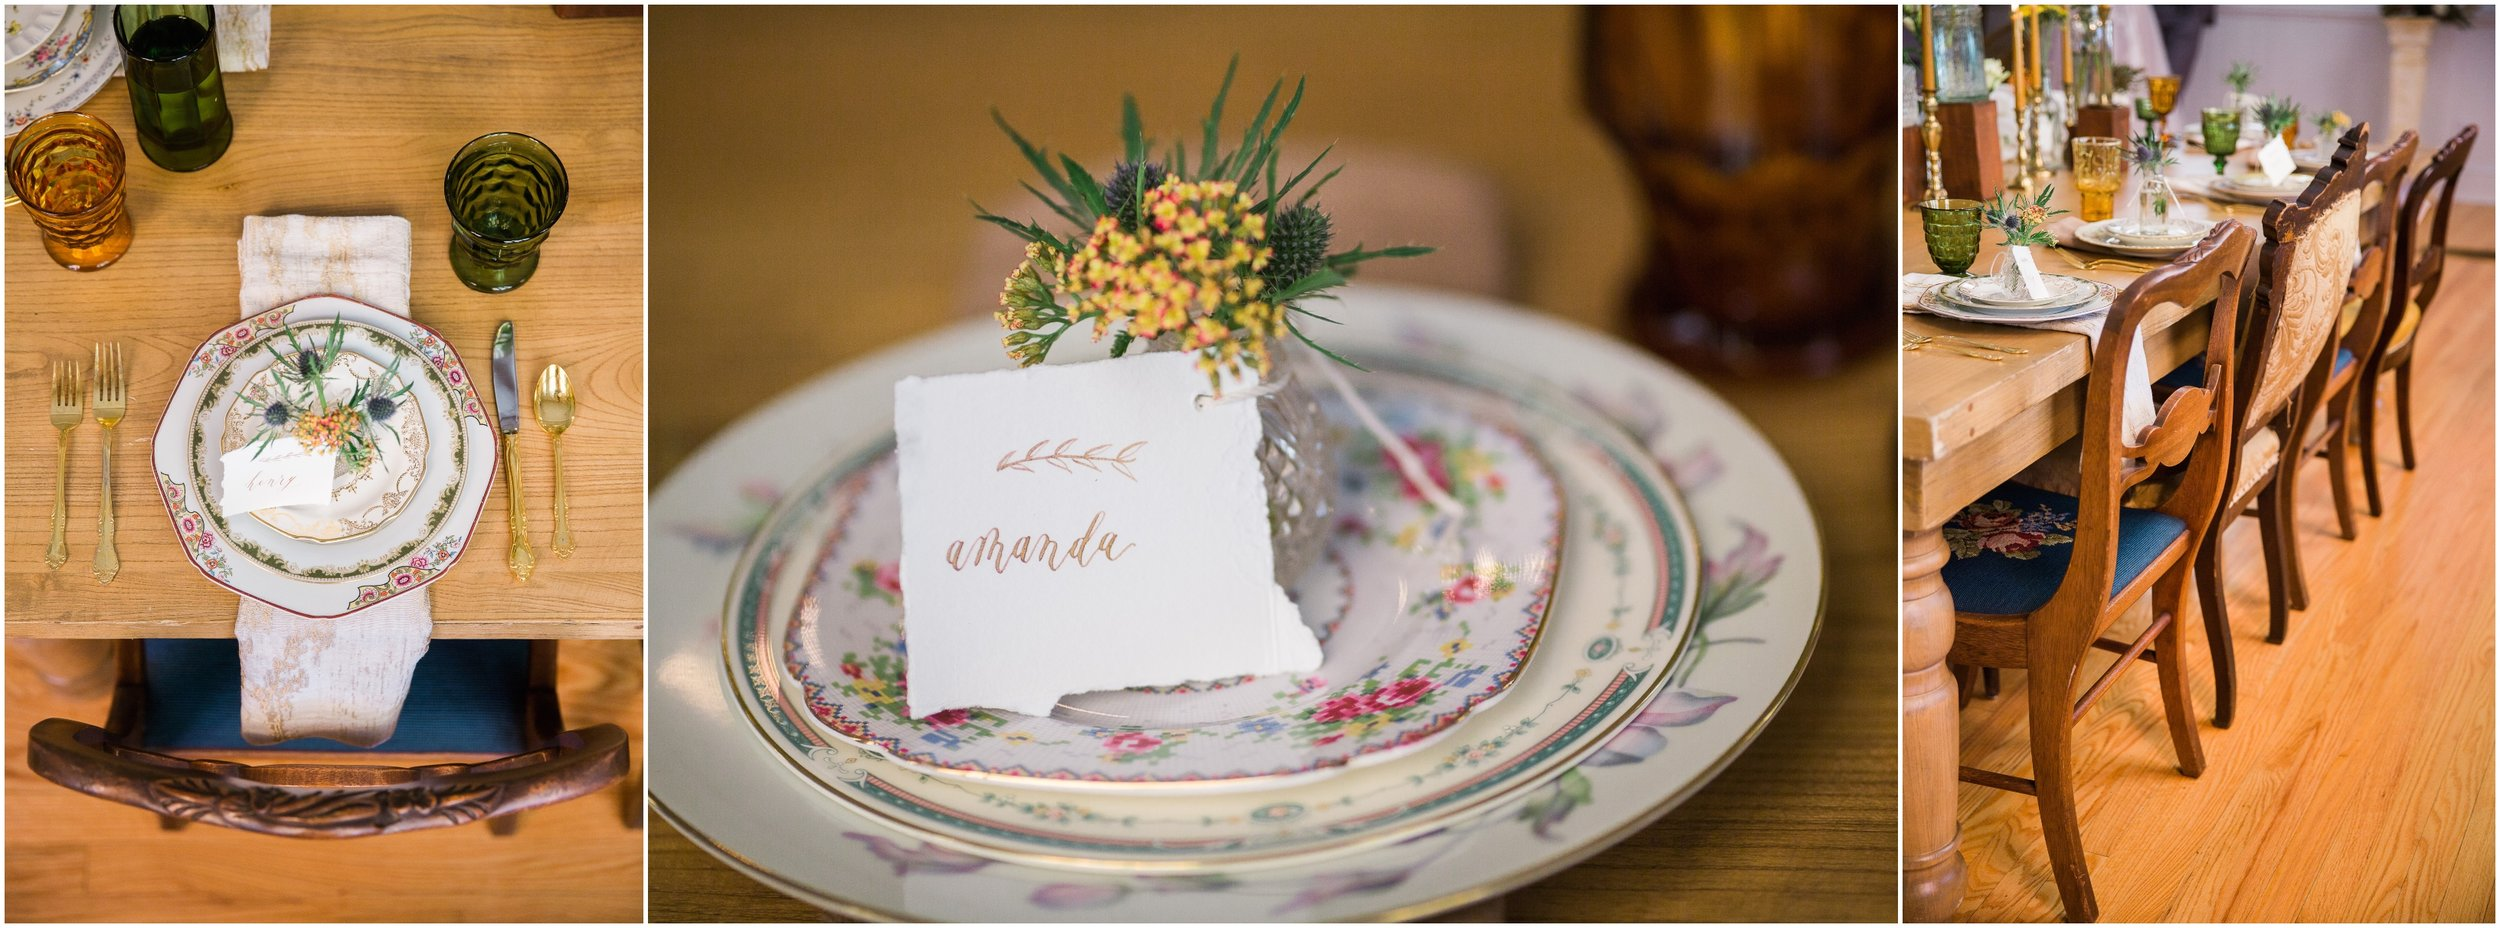 PHOTOGRAPHY -  BAMBER PHOTOGRAPHY , VENUE -  THE TRINITY CHAPEL , FLORALS -  THE CLAY POT , Linens -  NUAGE DESIGNS , TABLE -  LUMA DESIGNS , CALLIGRAPHY -  DAFFOLILY , VINTAGE RENTALS + DESIGN -  THE COPPER QUAIL